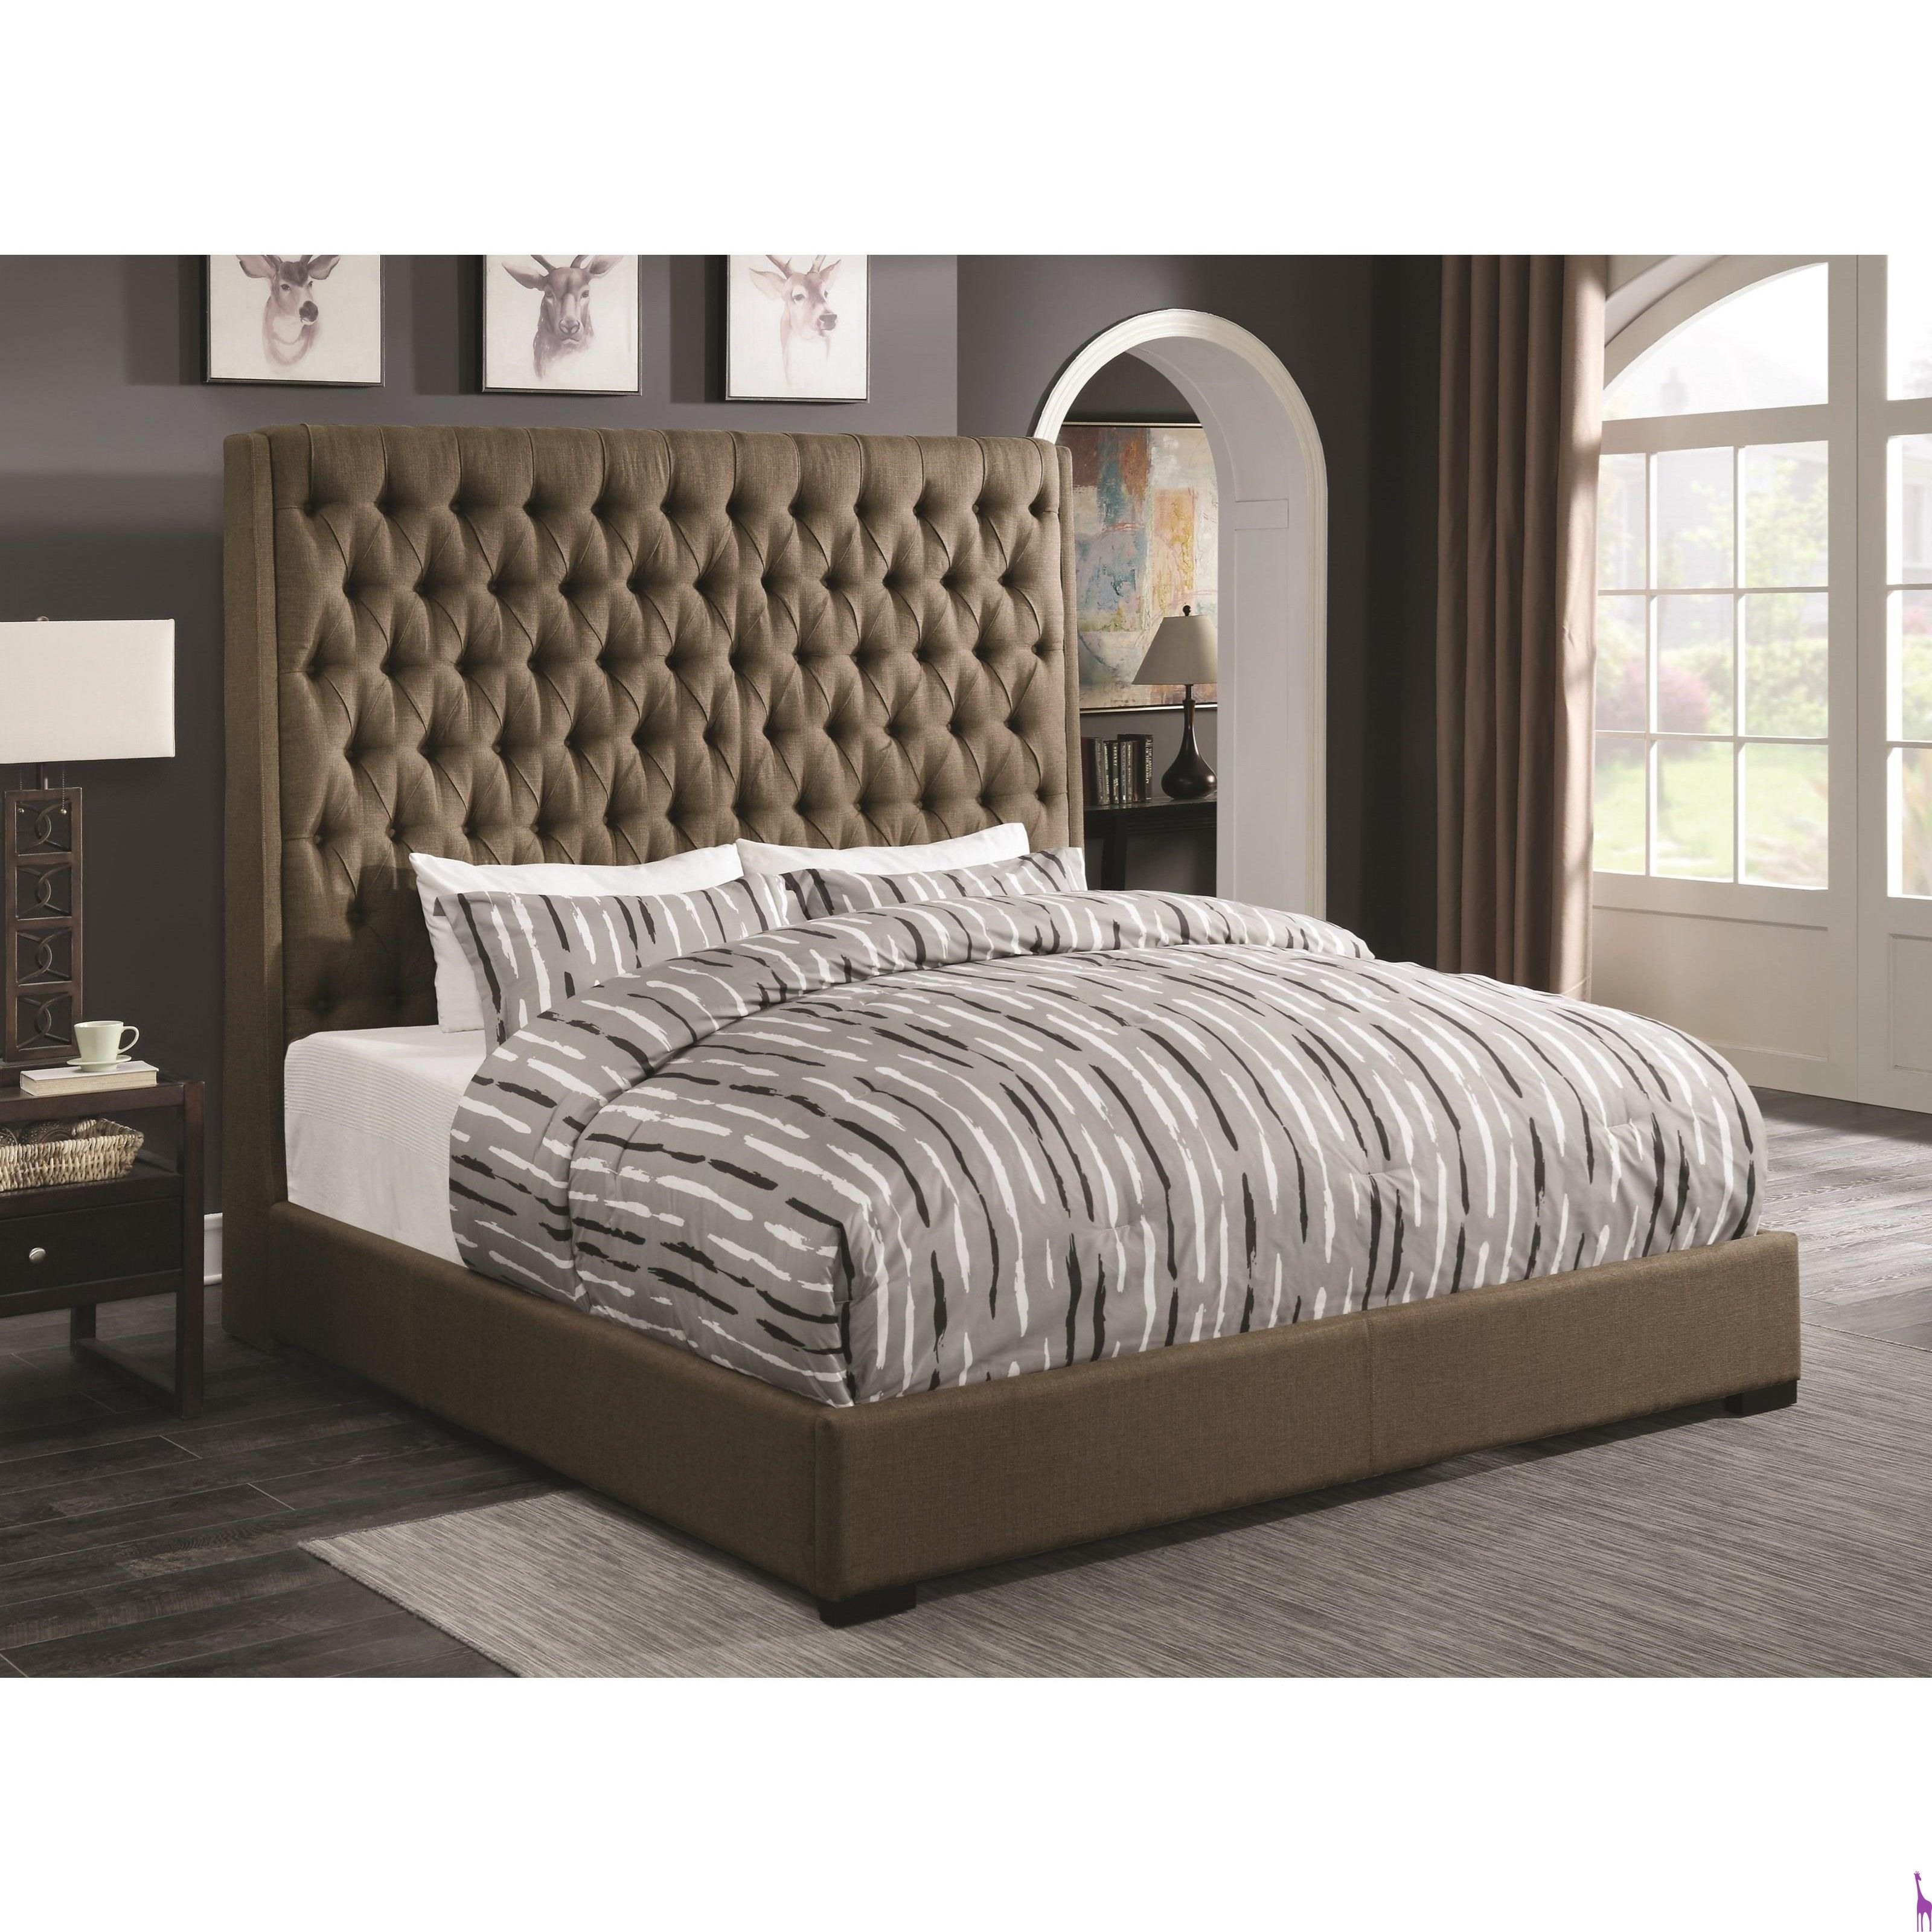 Best Camille Brown Upholstered Bed With Diamond Tufting 400 x 300